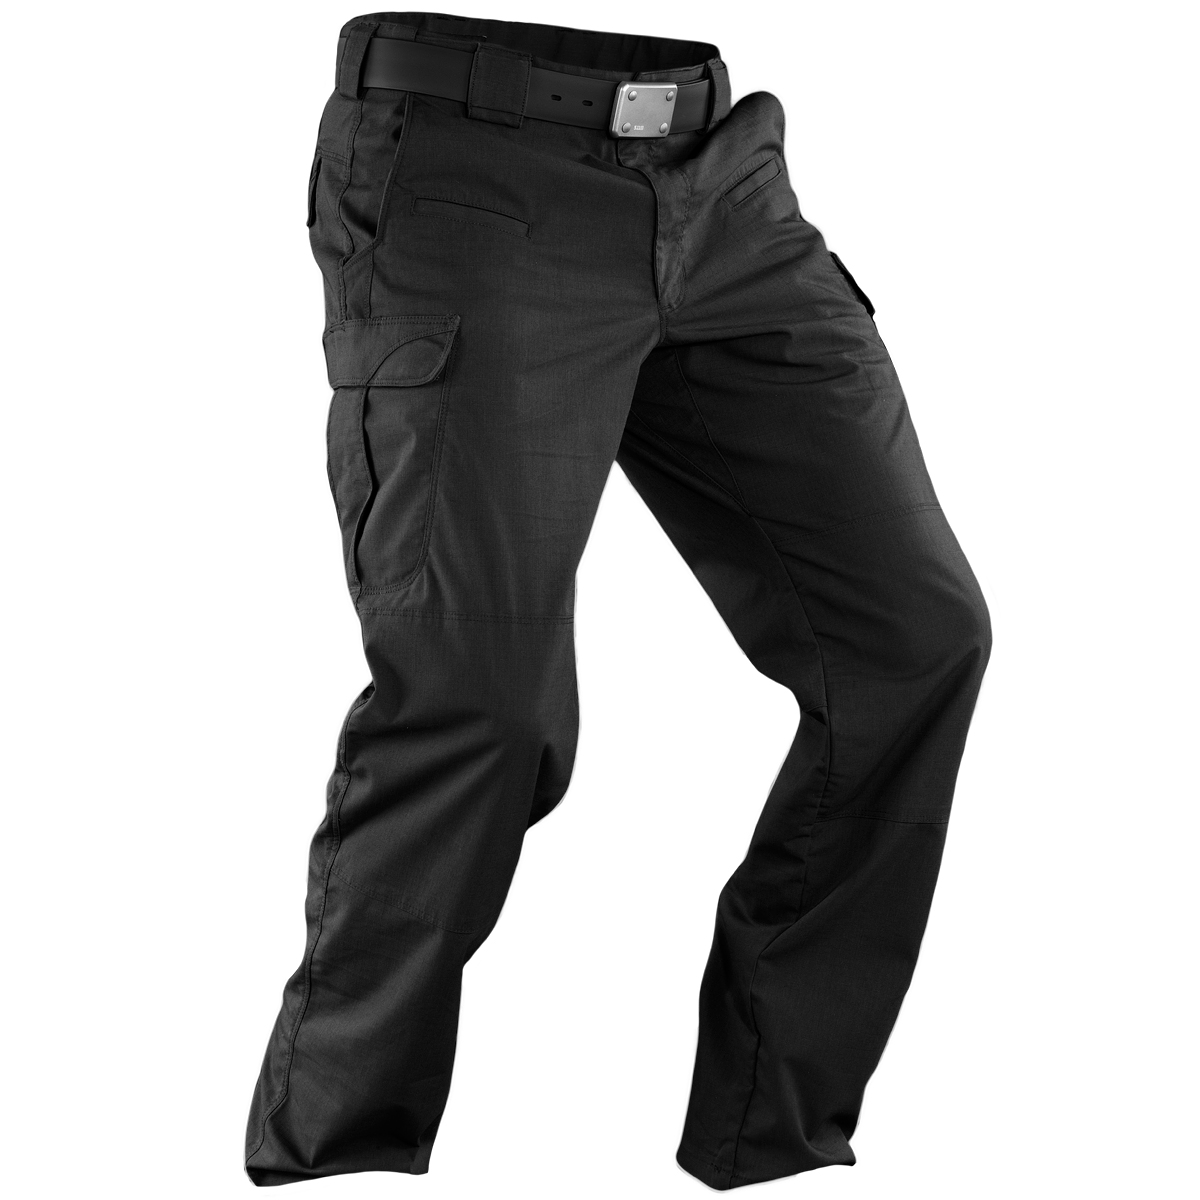 The Stryke Pant with Flex-Tac is another breakthrough pant exclusively from Tactical. Featuring quick access, low-profile angled pockets, a self adjusting waistband, and superior stain resistance, the Stryke Pant is an ideal choice on the range, out in the field or even at the gym.